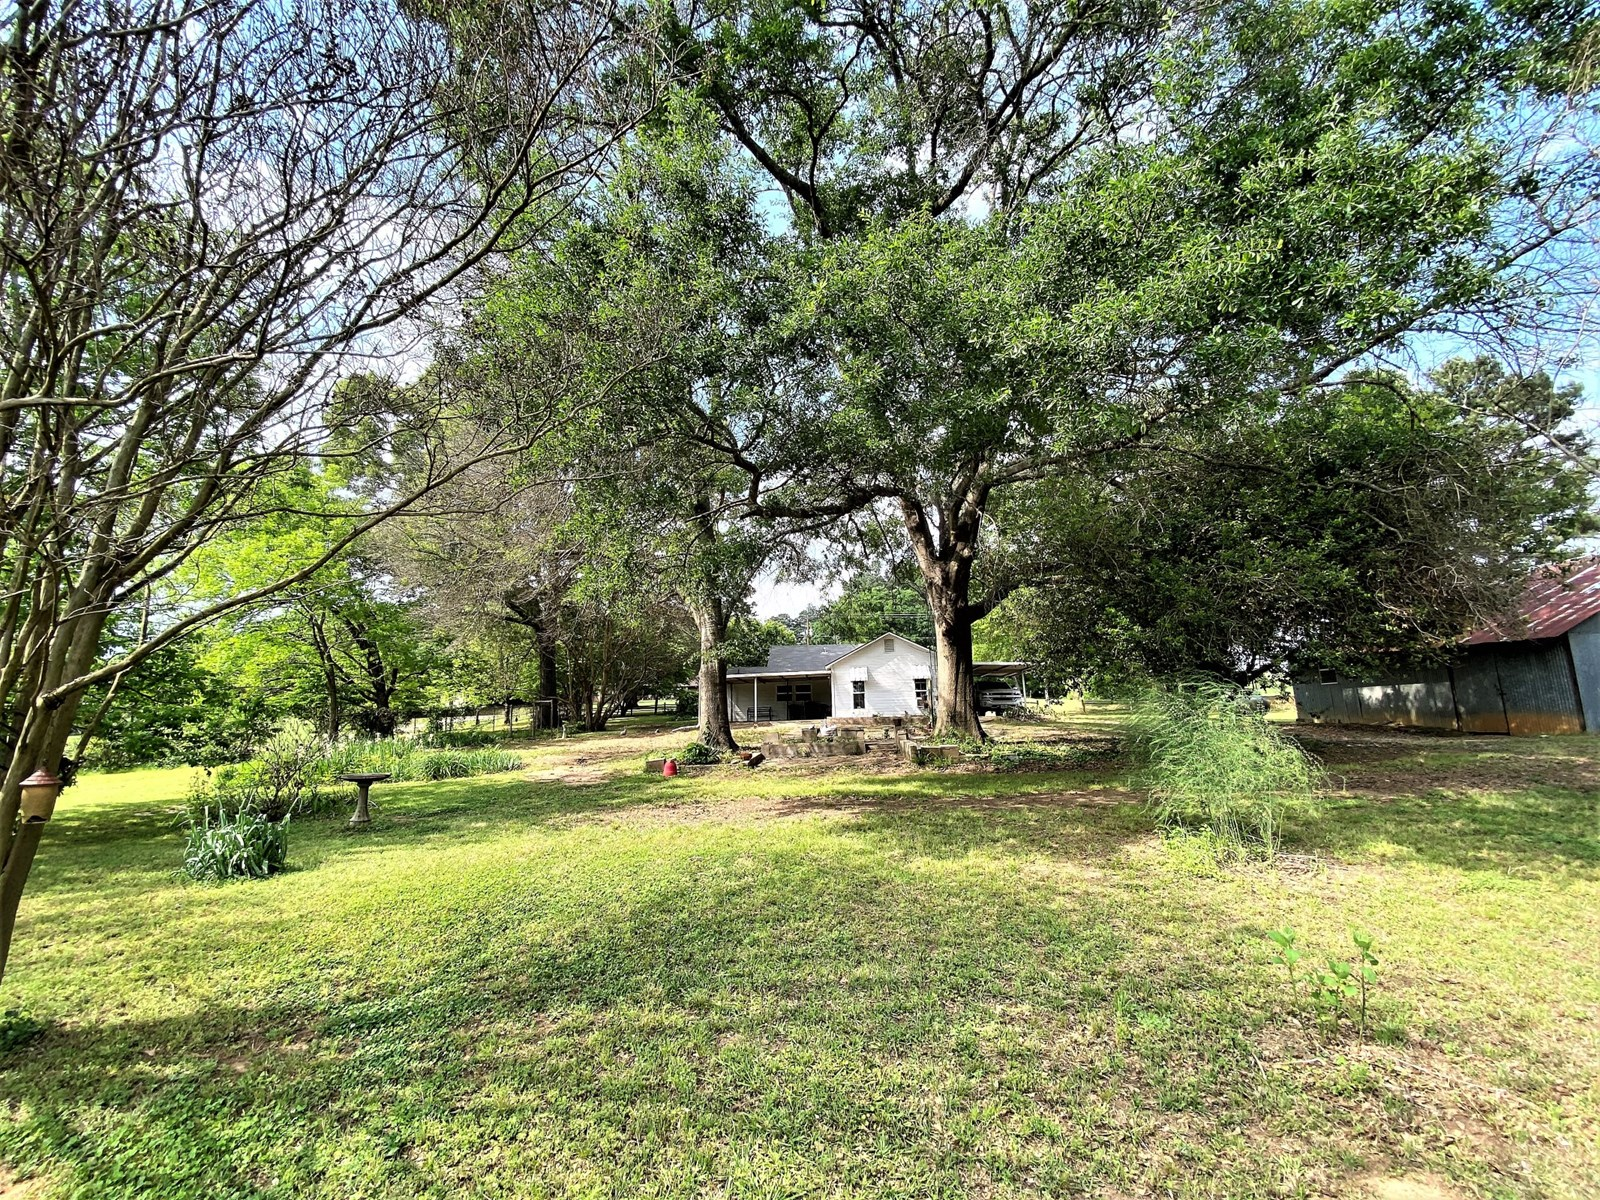 Home & Land for Sale in Smith Co Texas near Lake Palestine